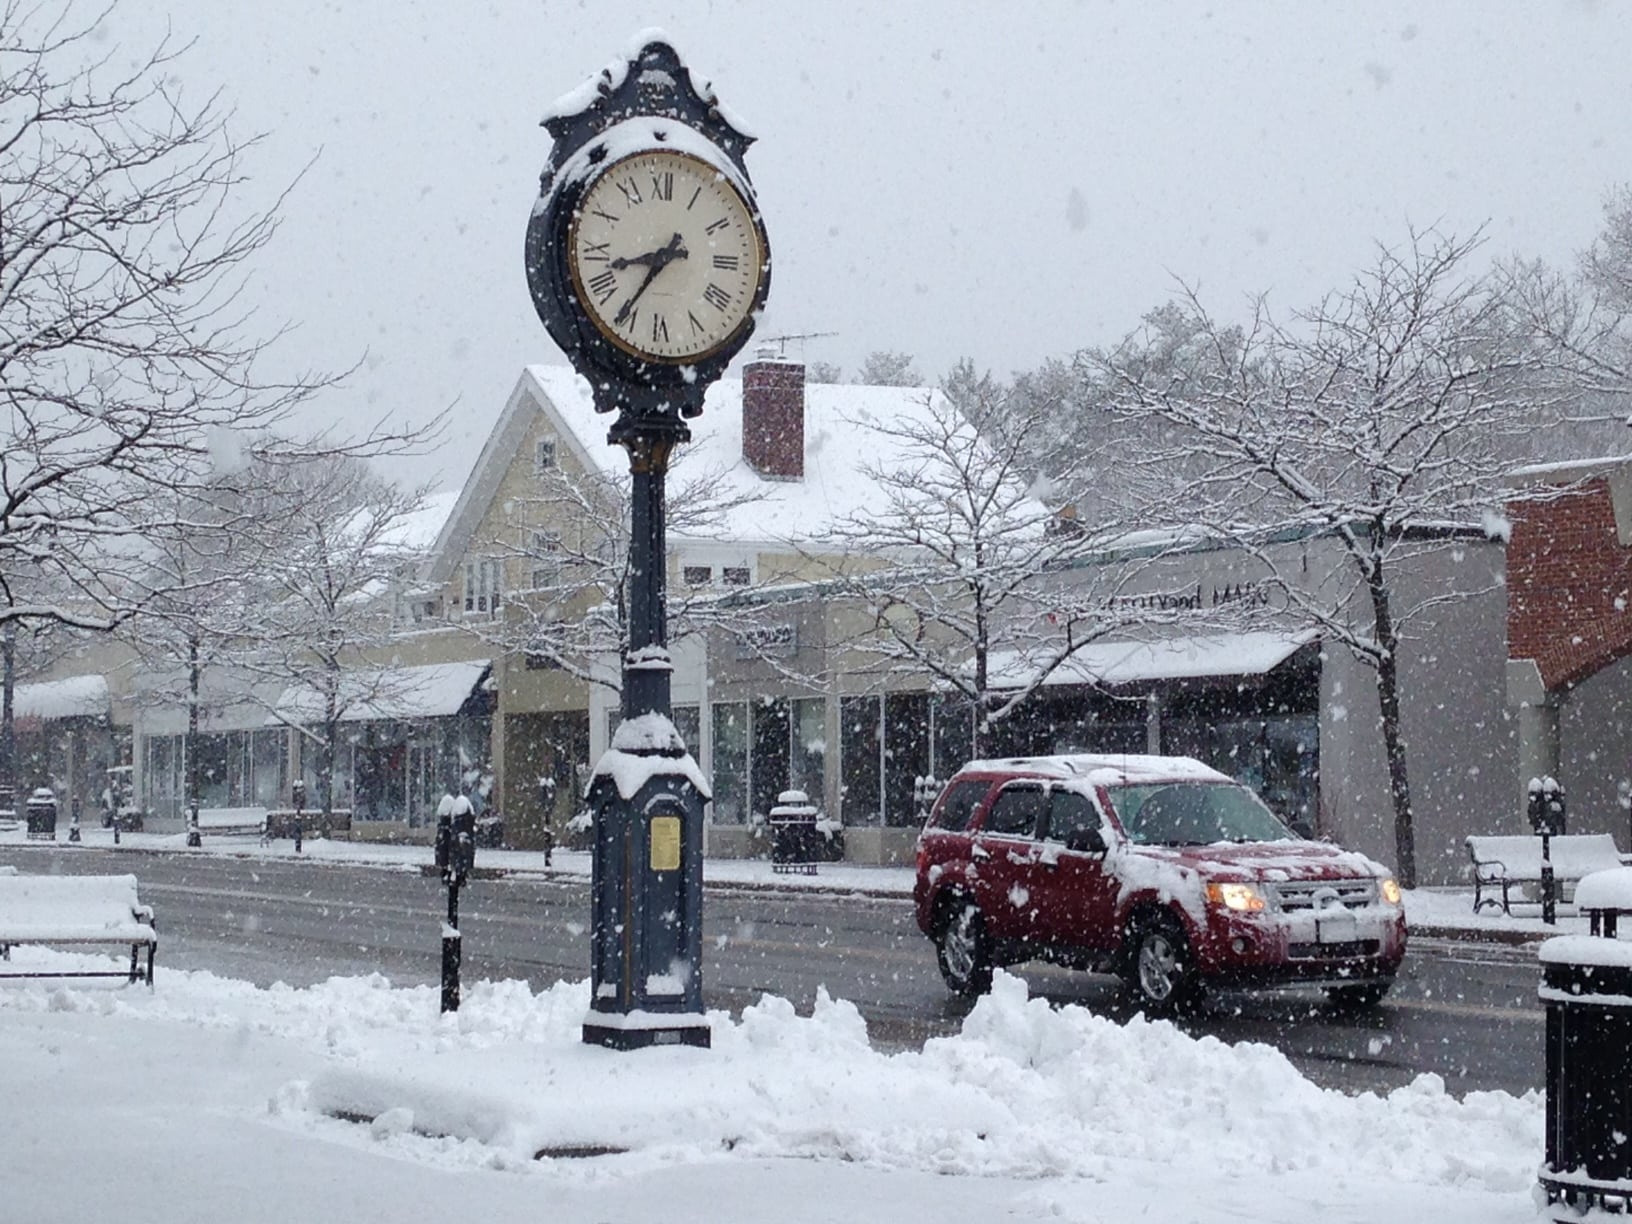 Wellesley Square clock, Spring 2016 snow storm